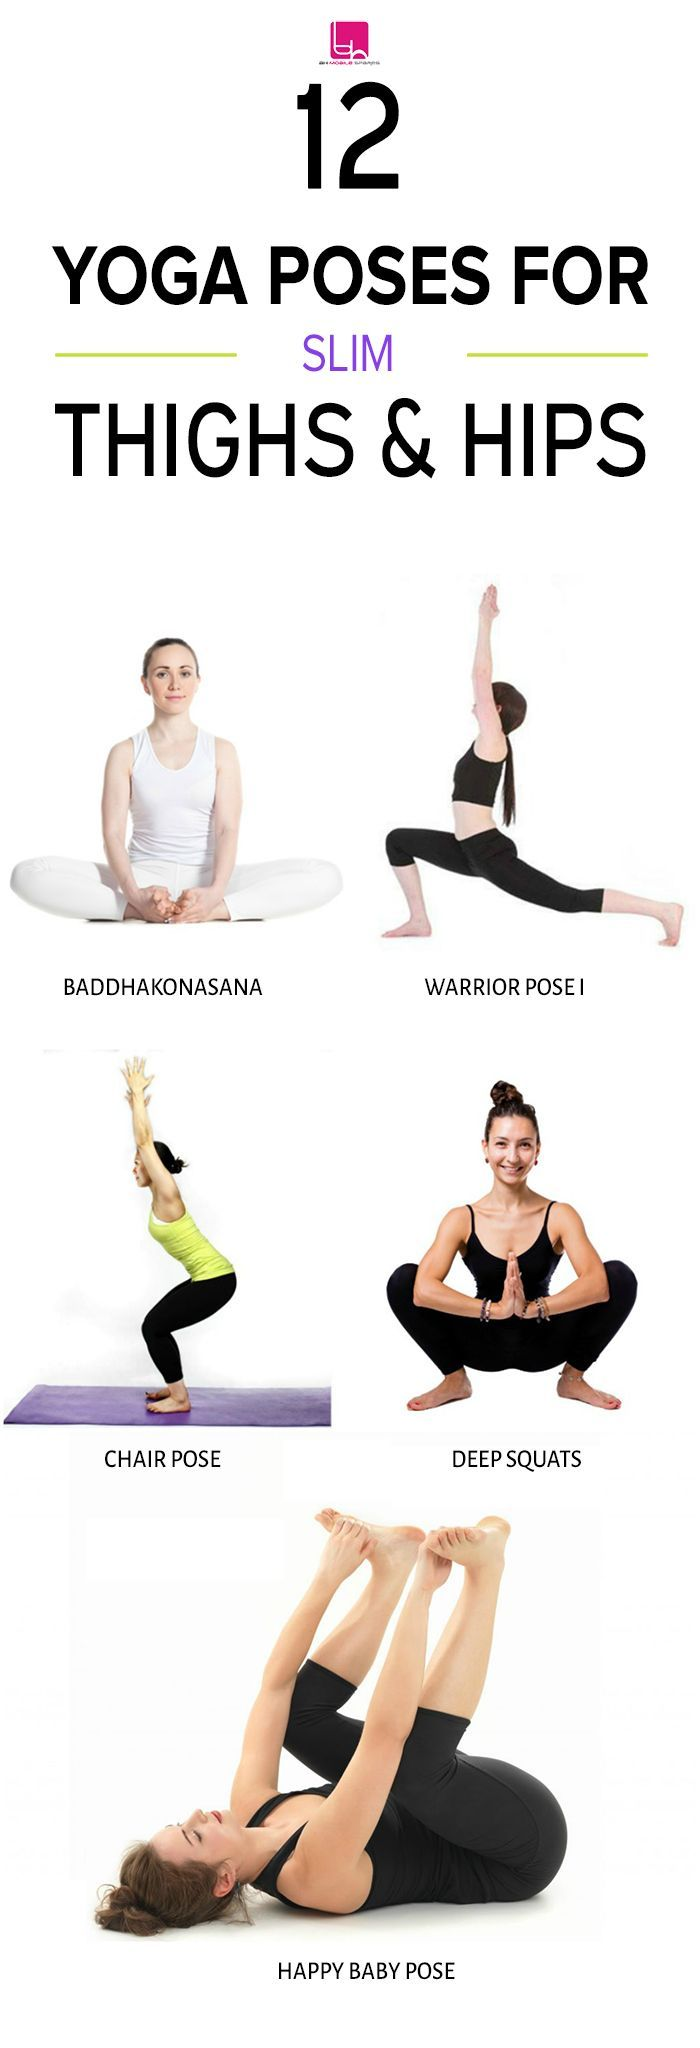 Yoga Poses for Slim Thighs and Hips